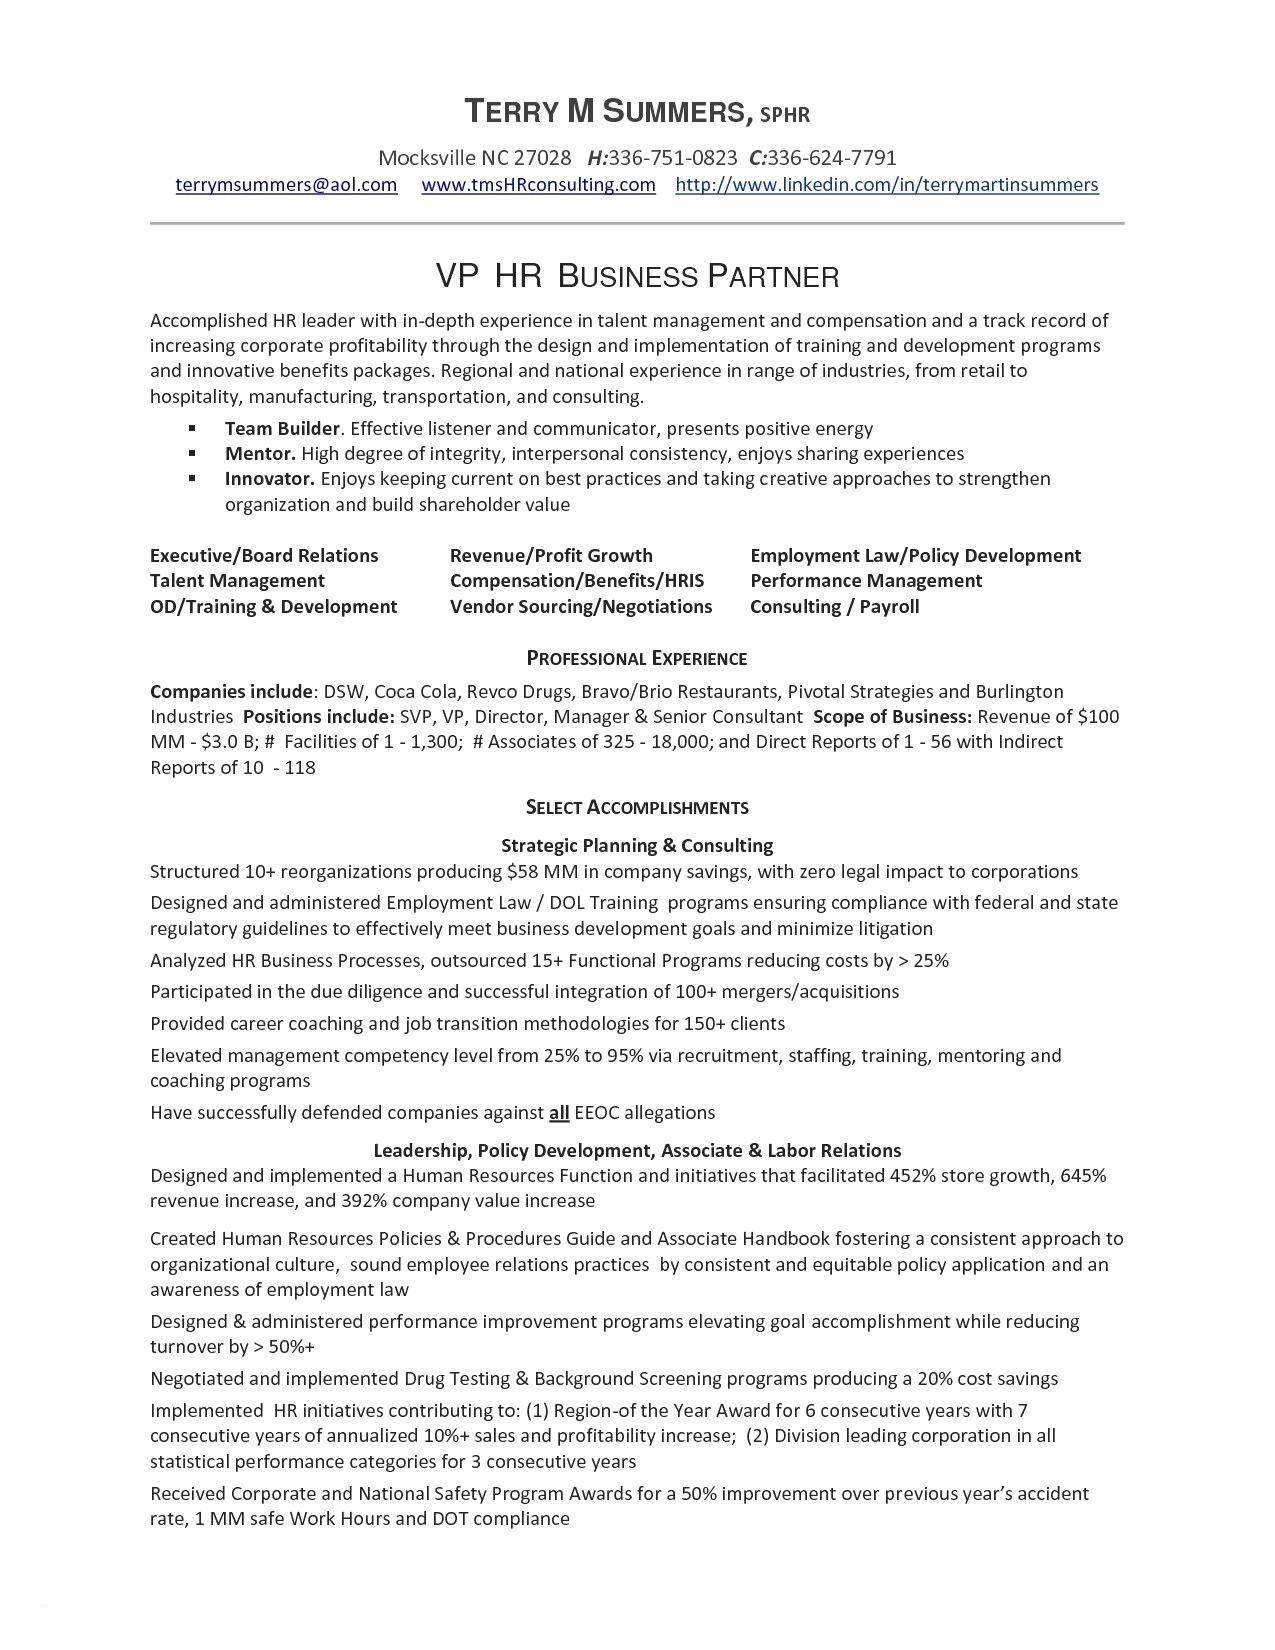 Executive Administrative assistant Resume - 47 Luxury Sample Cover Letter Administrative assistant Resume